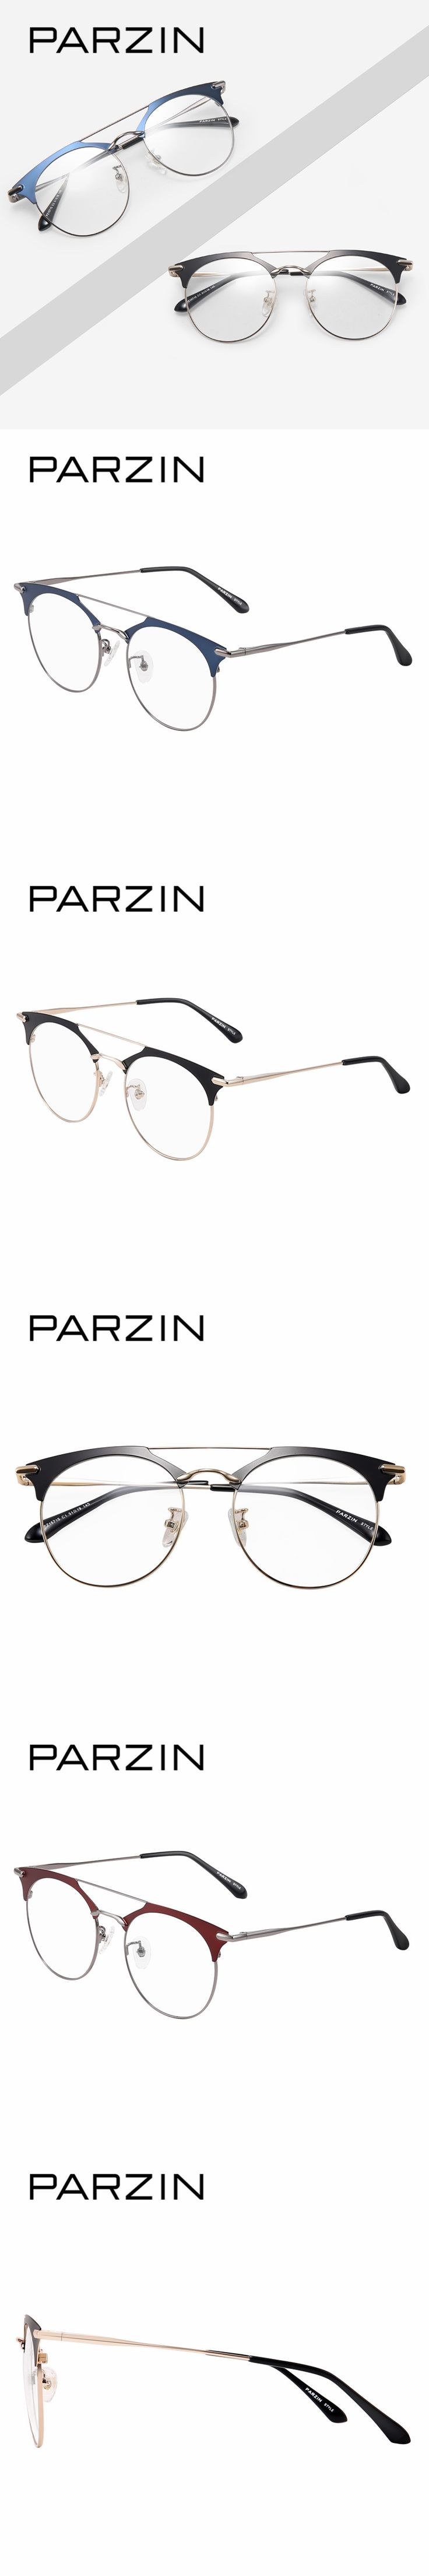 PARZIN Semi Rimless Round Glasses Frames With Clear Lens Top Grade Prescription Eyeglass Frames With Anti-Blue Glasses